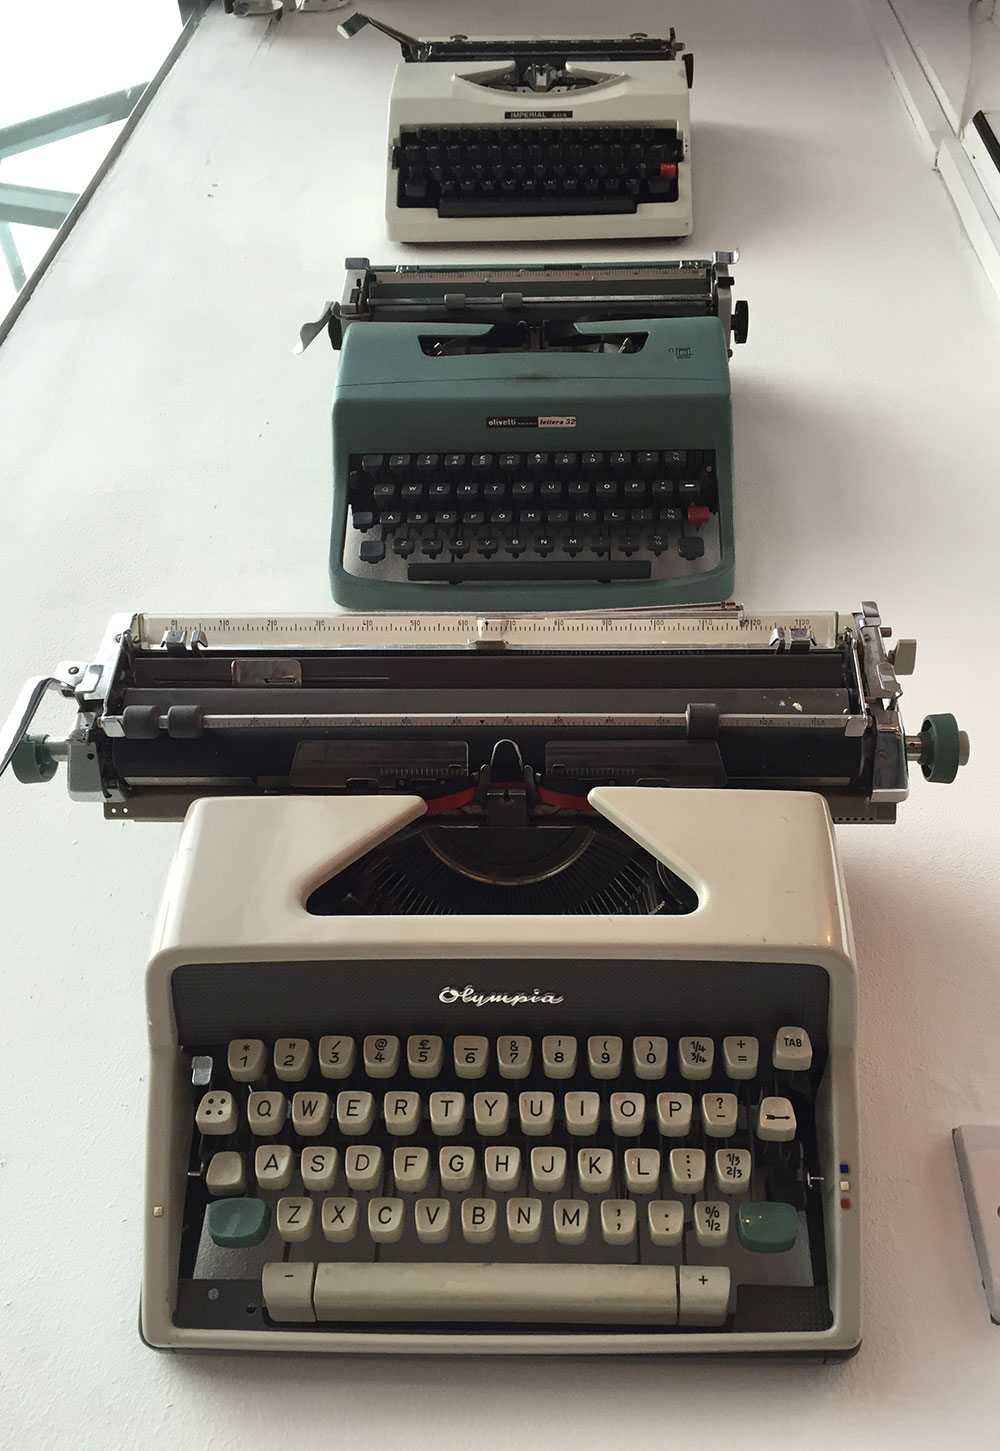 3 typewriters hanging on a wall